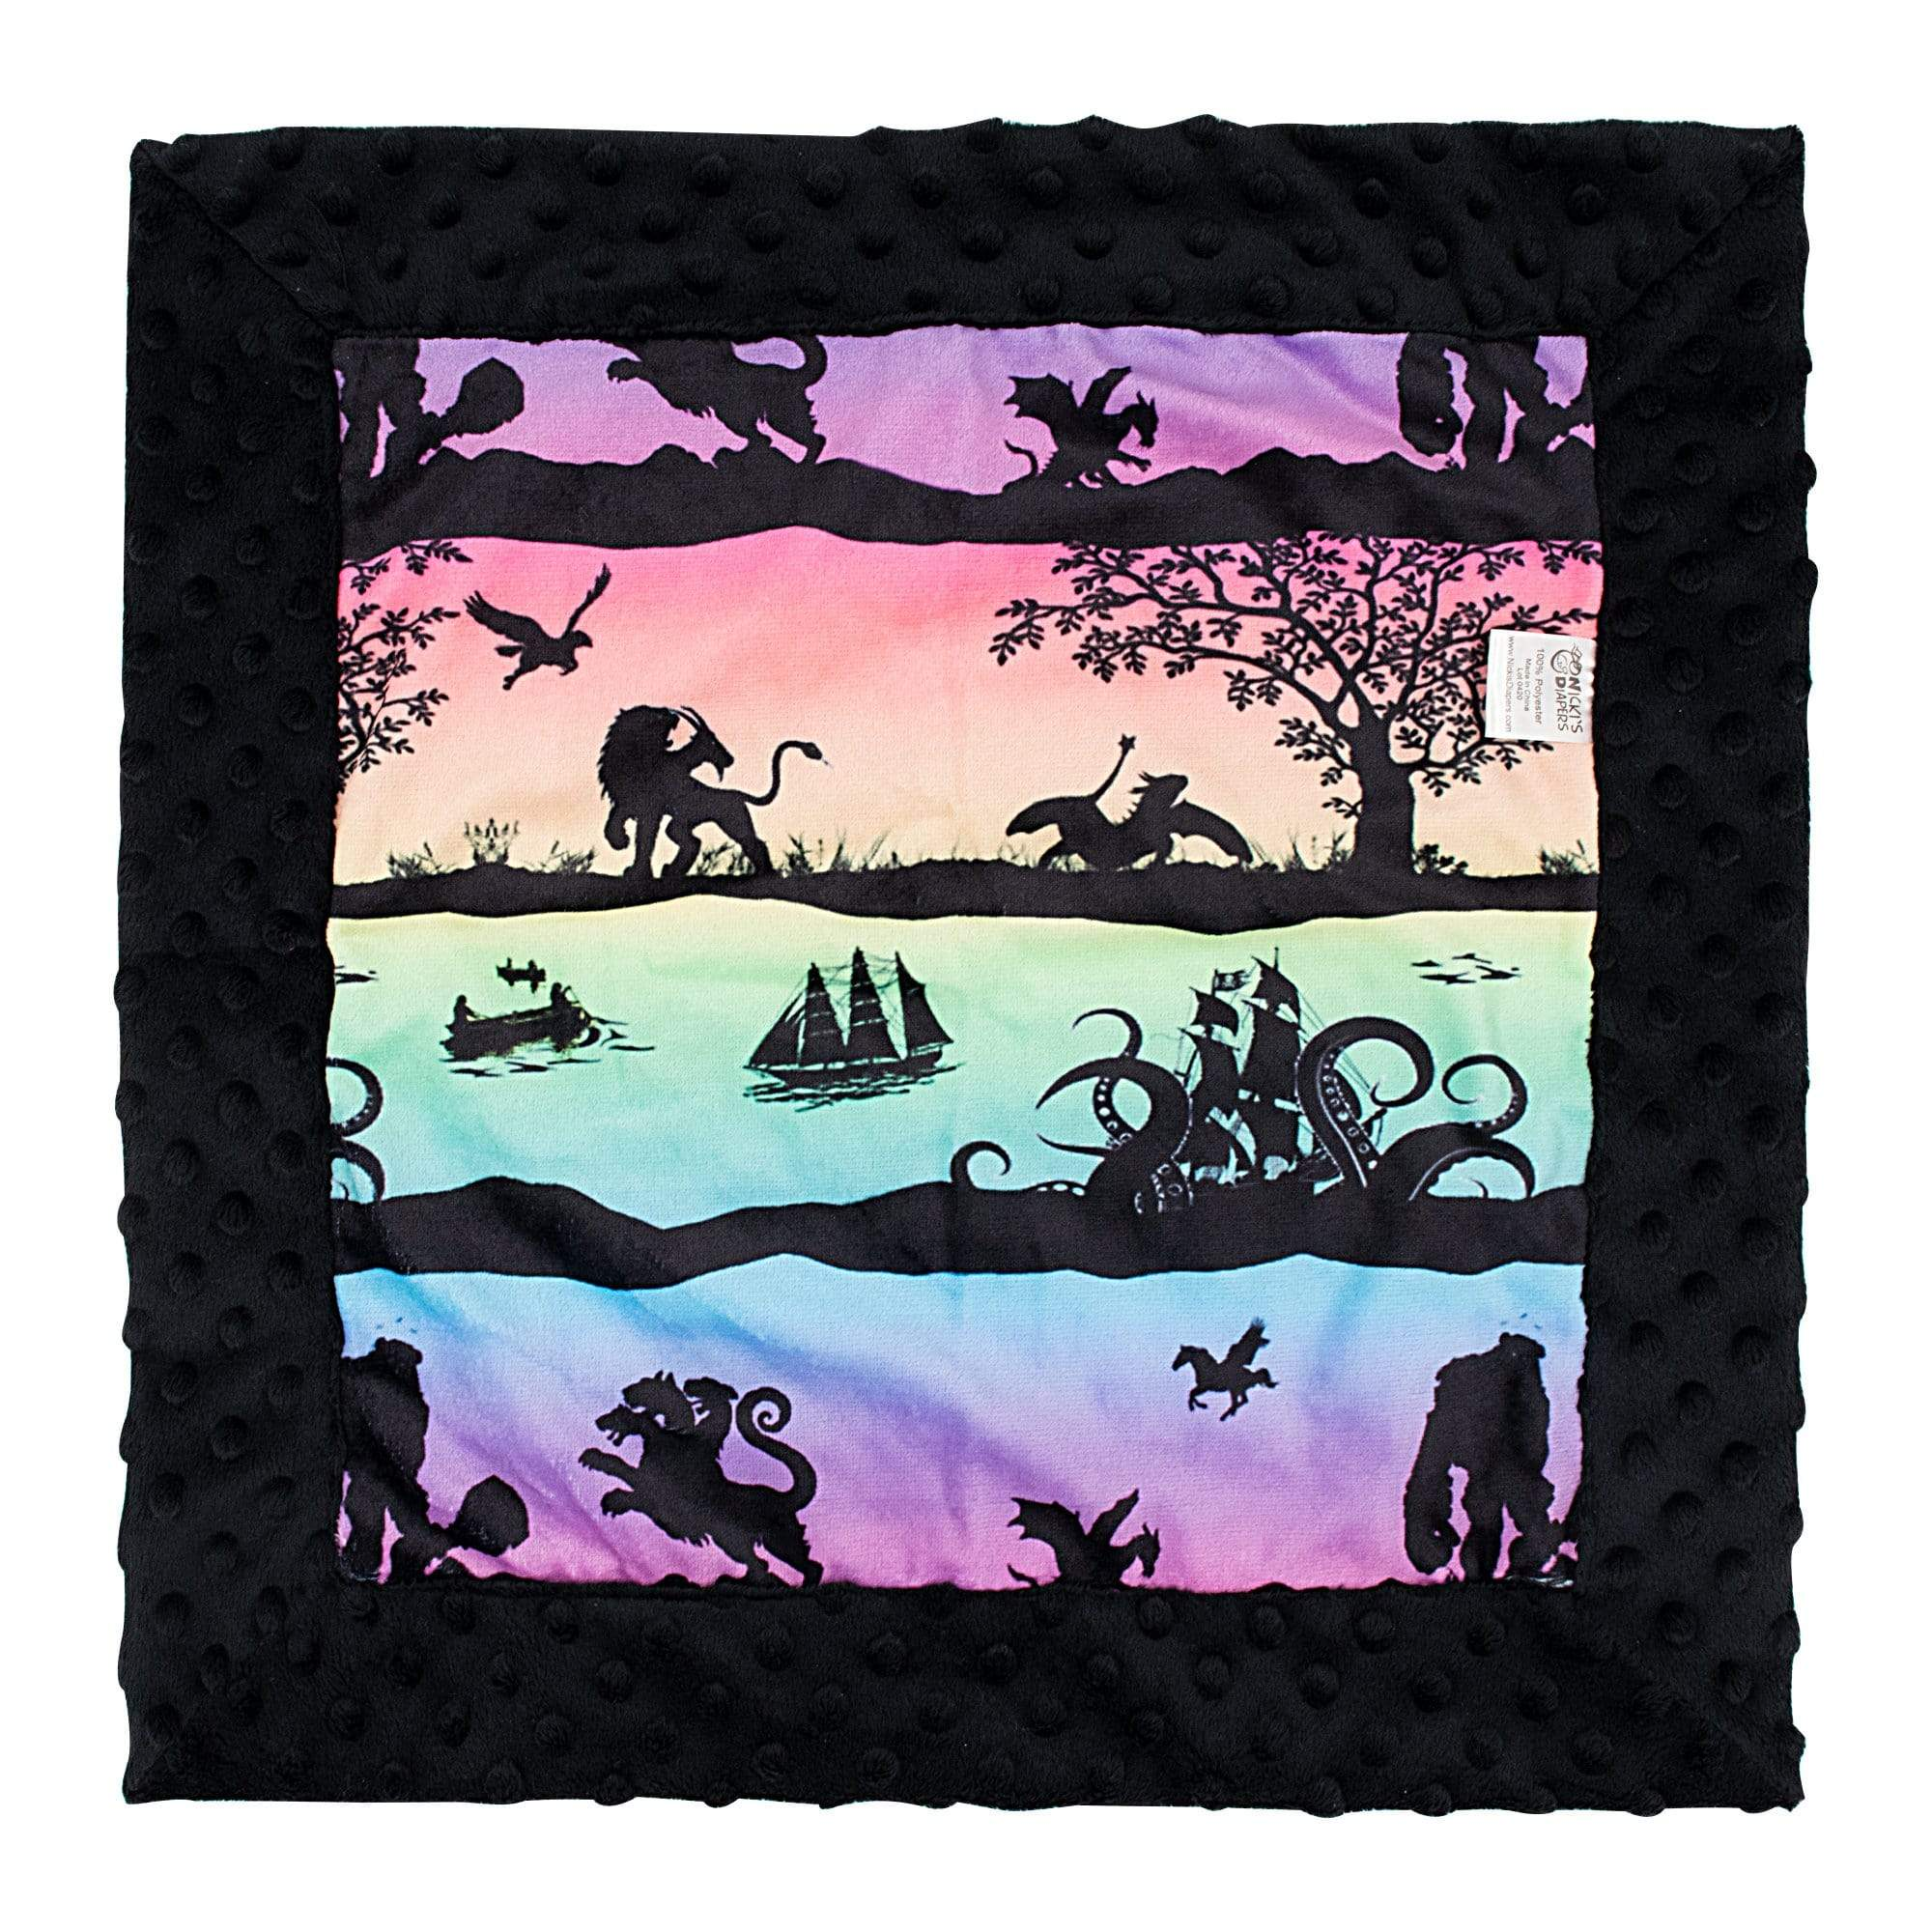 Nicki's Diapes Baby Bubble Blanket - Storybook Sunrise